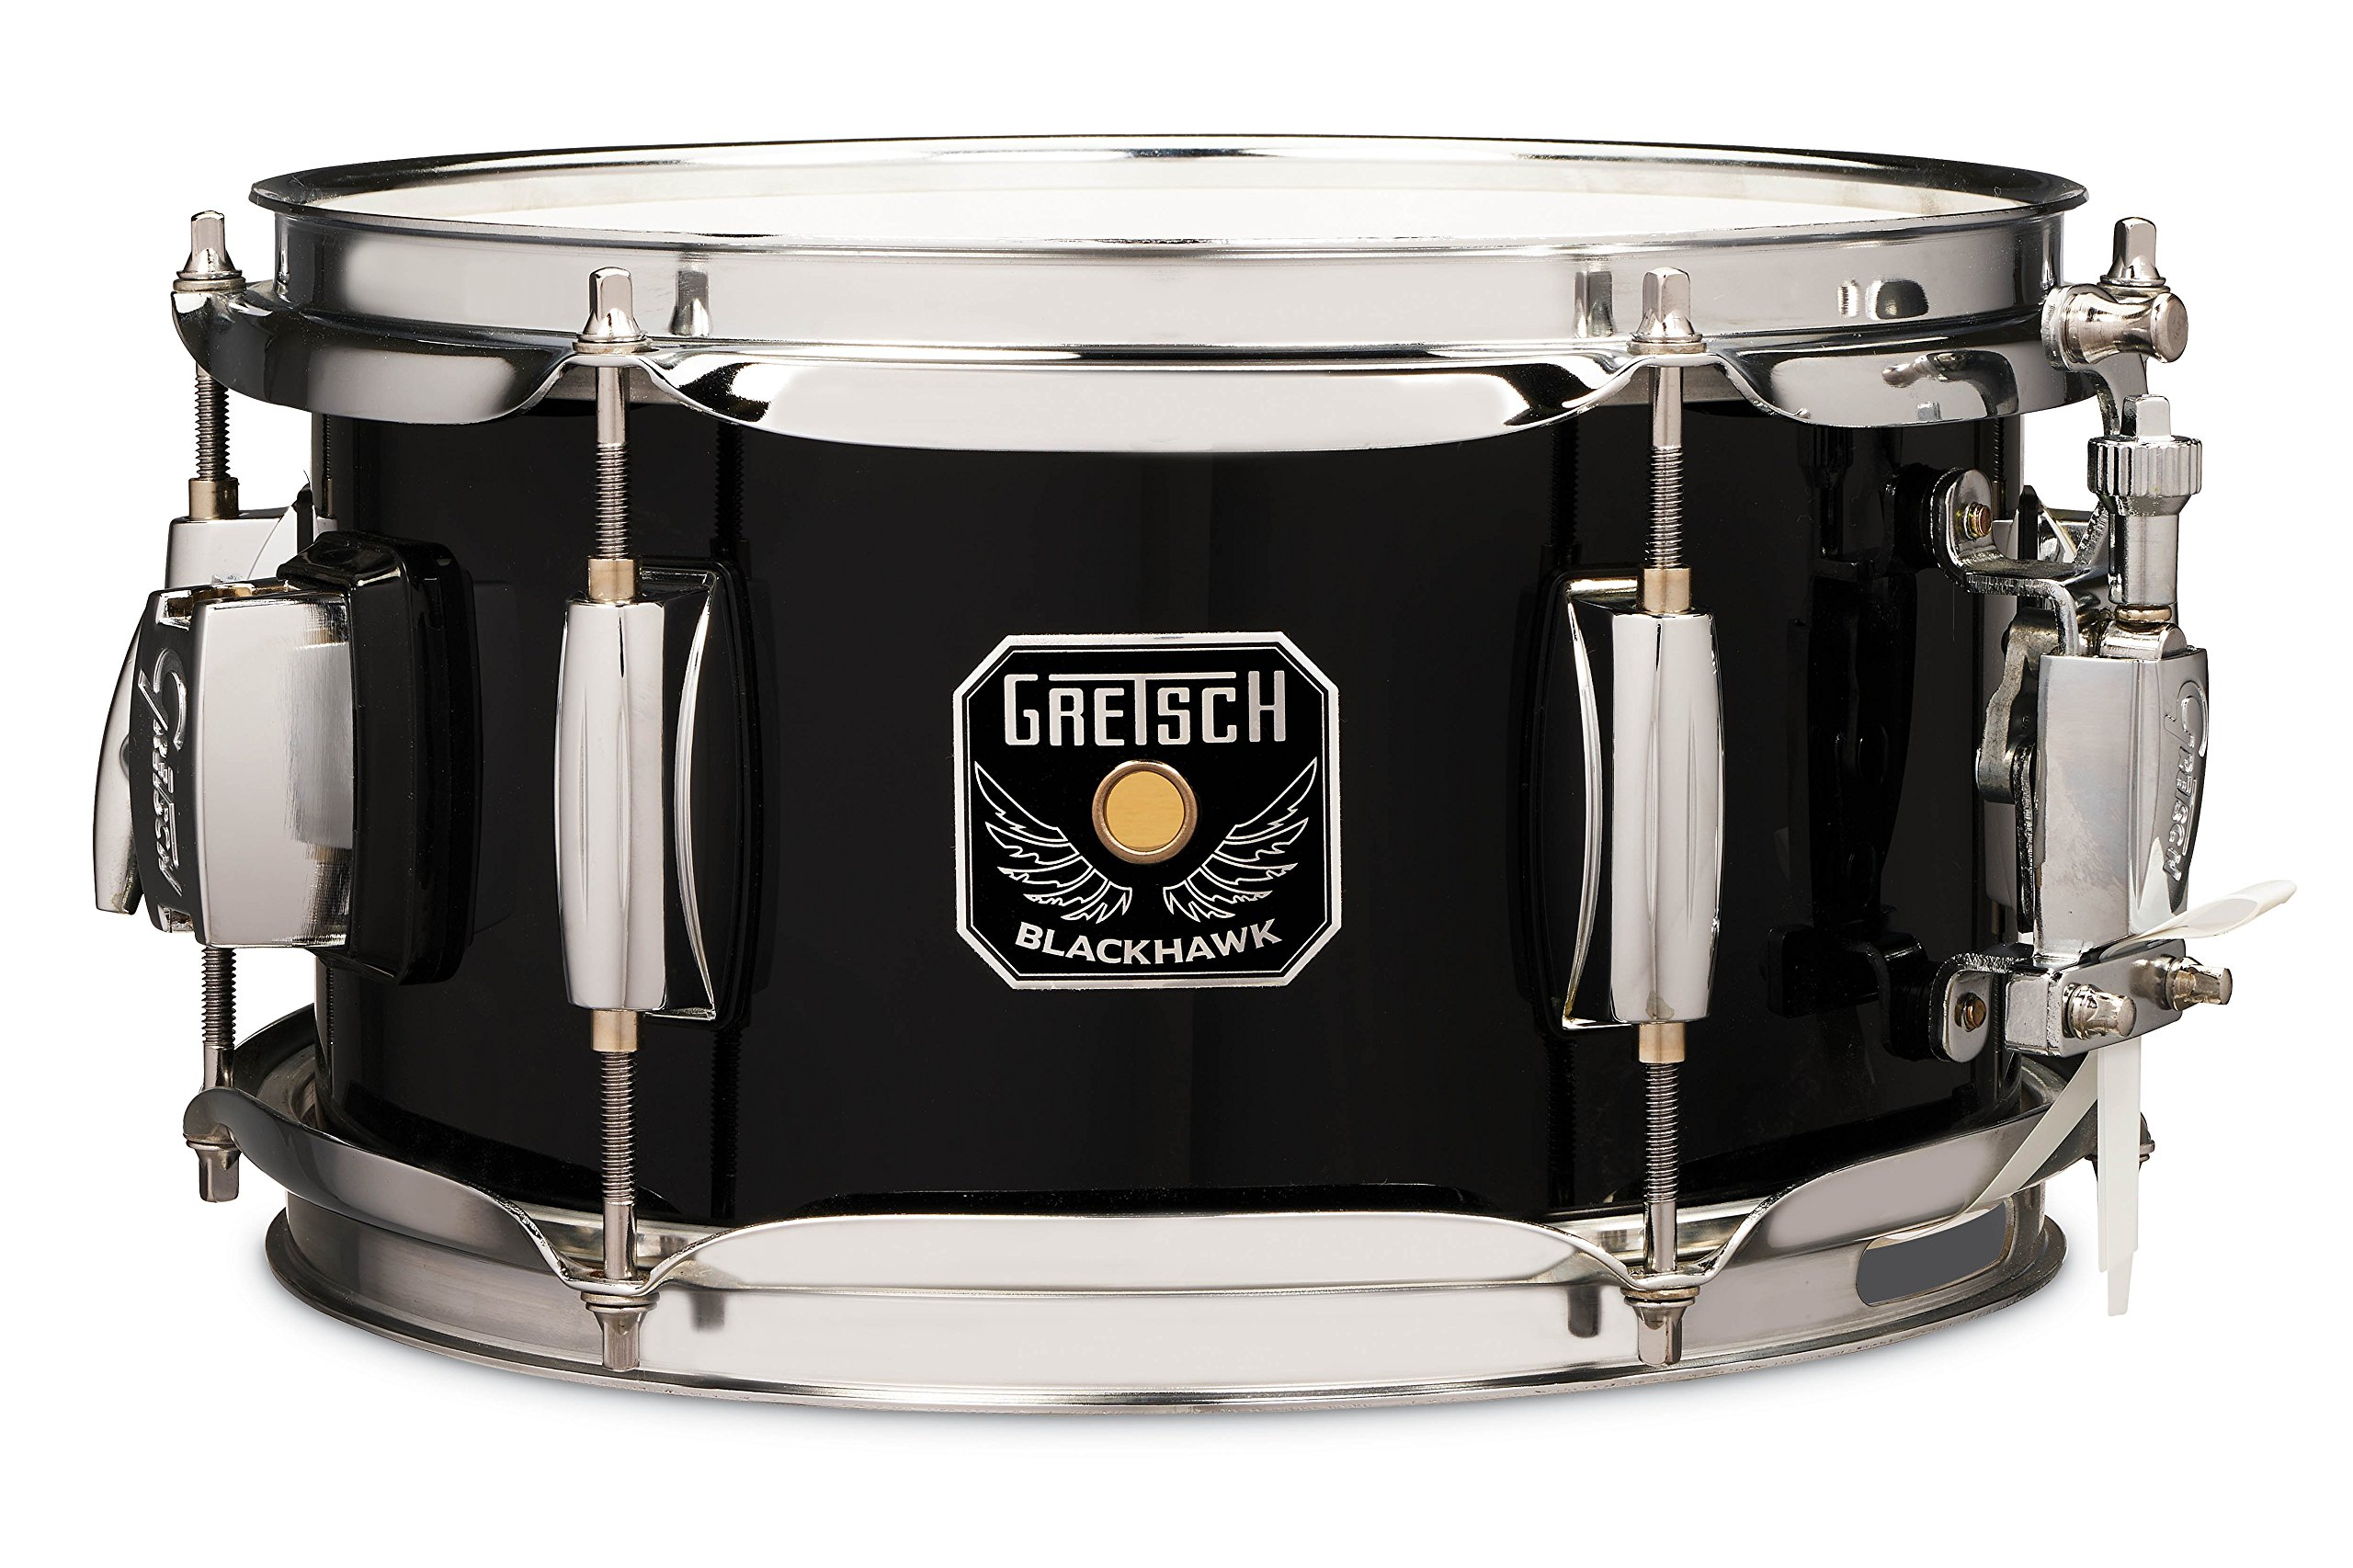 Gretsch Blackhawk Mighty Mini Snare 5.5x10 with Mount Black